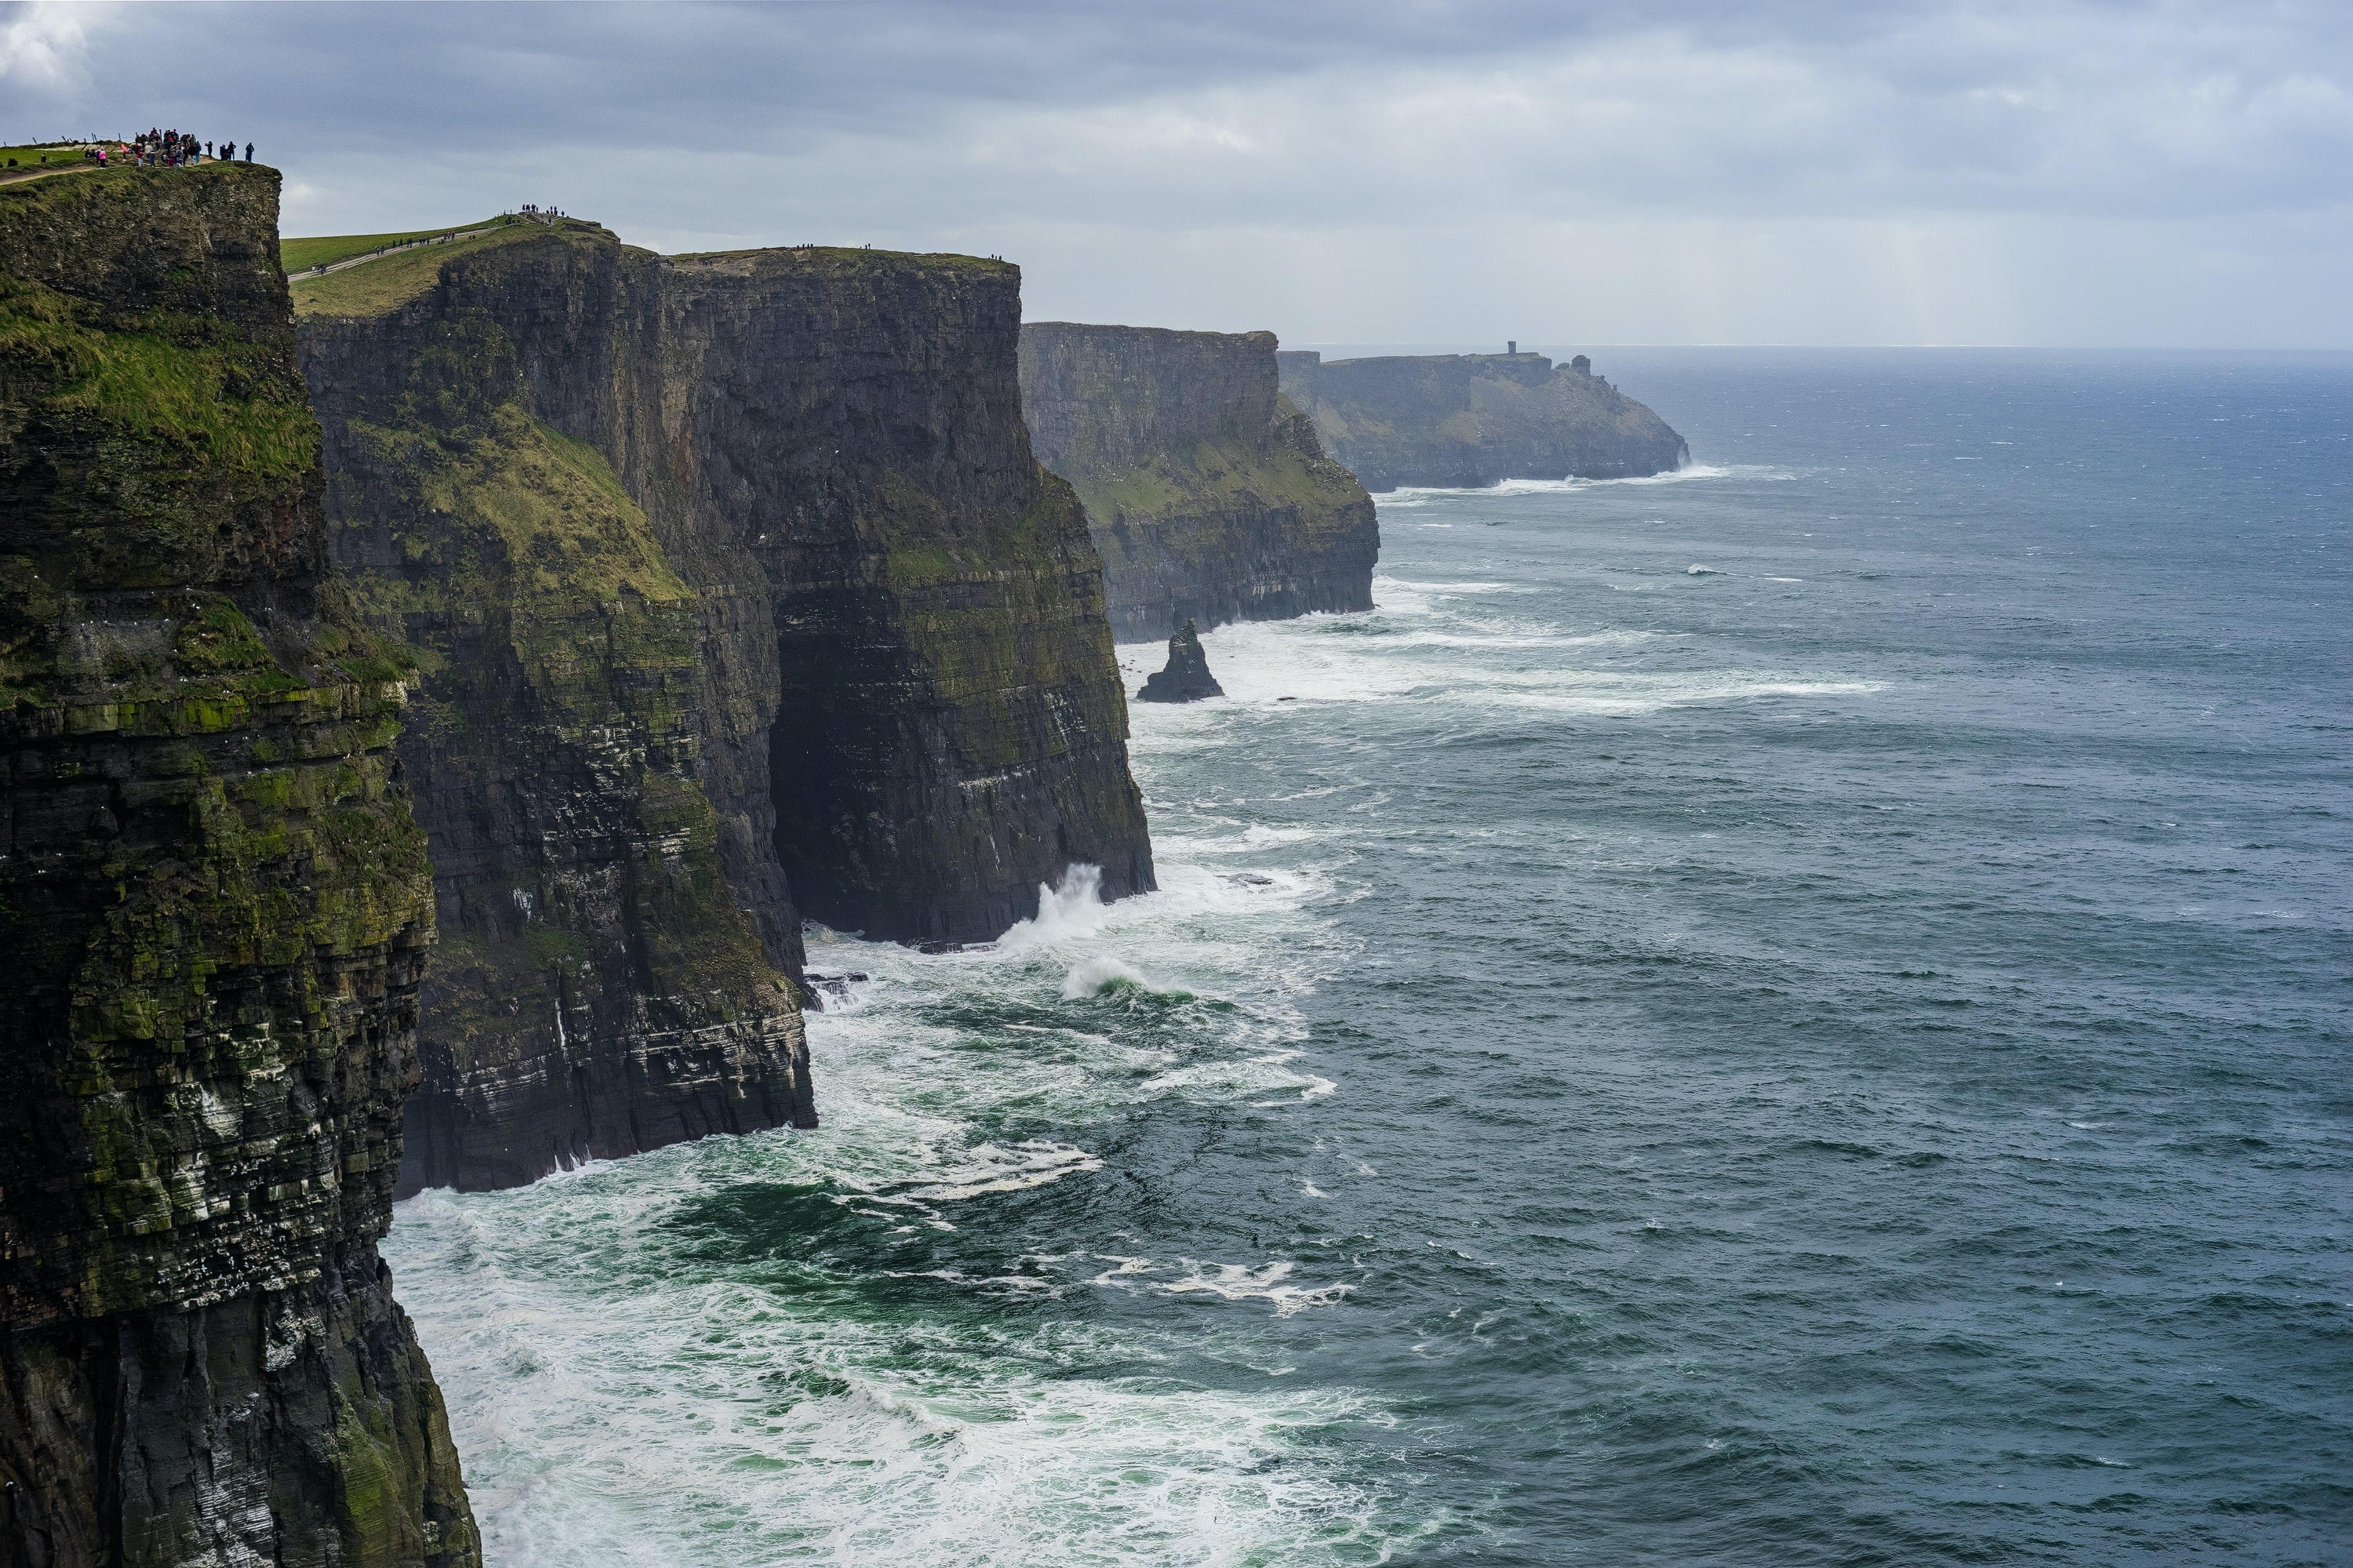 The rocky Cliffs of Moher and the sea in Ireland